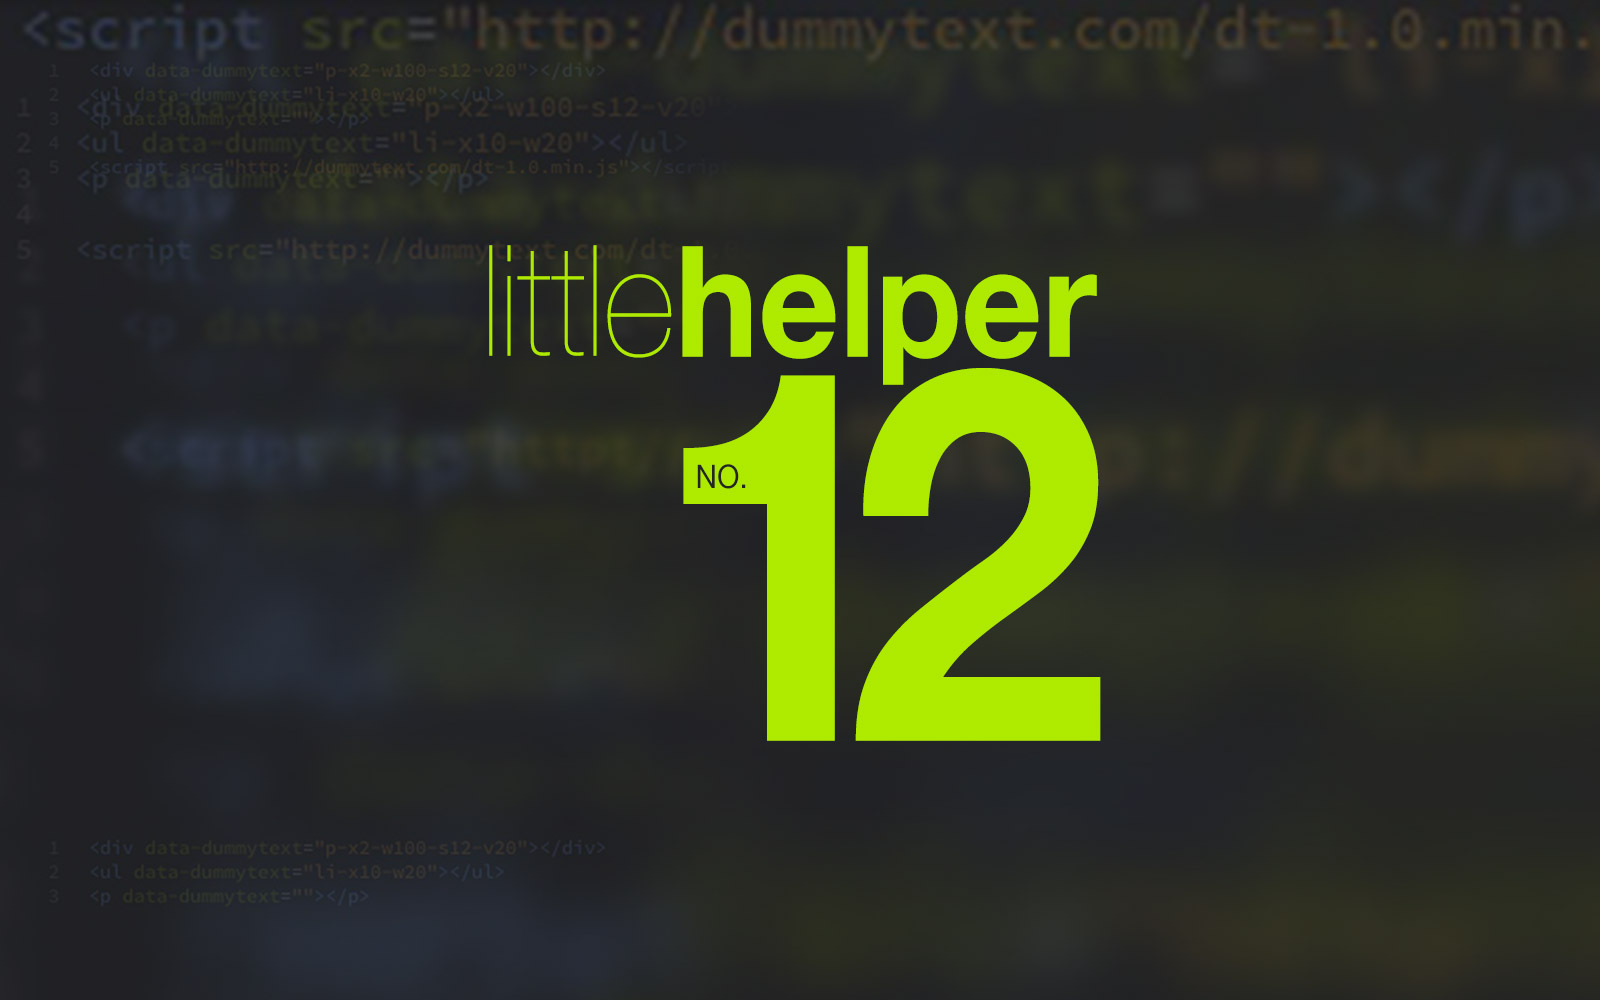 Helper12-teaser